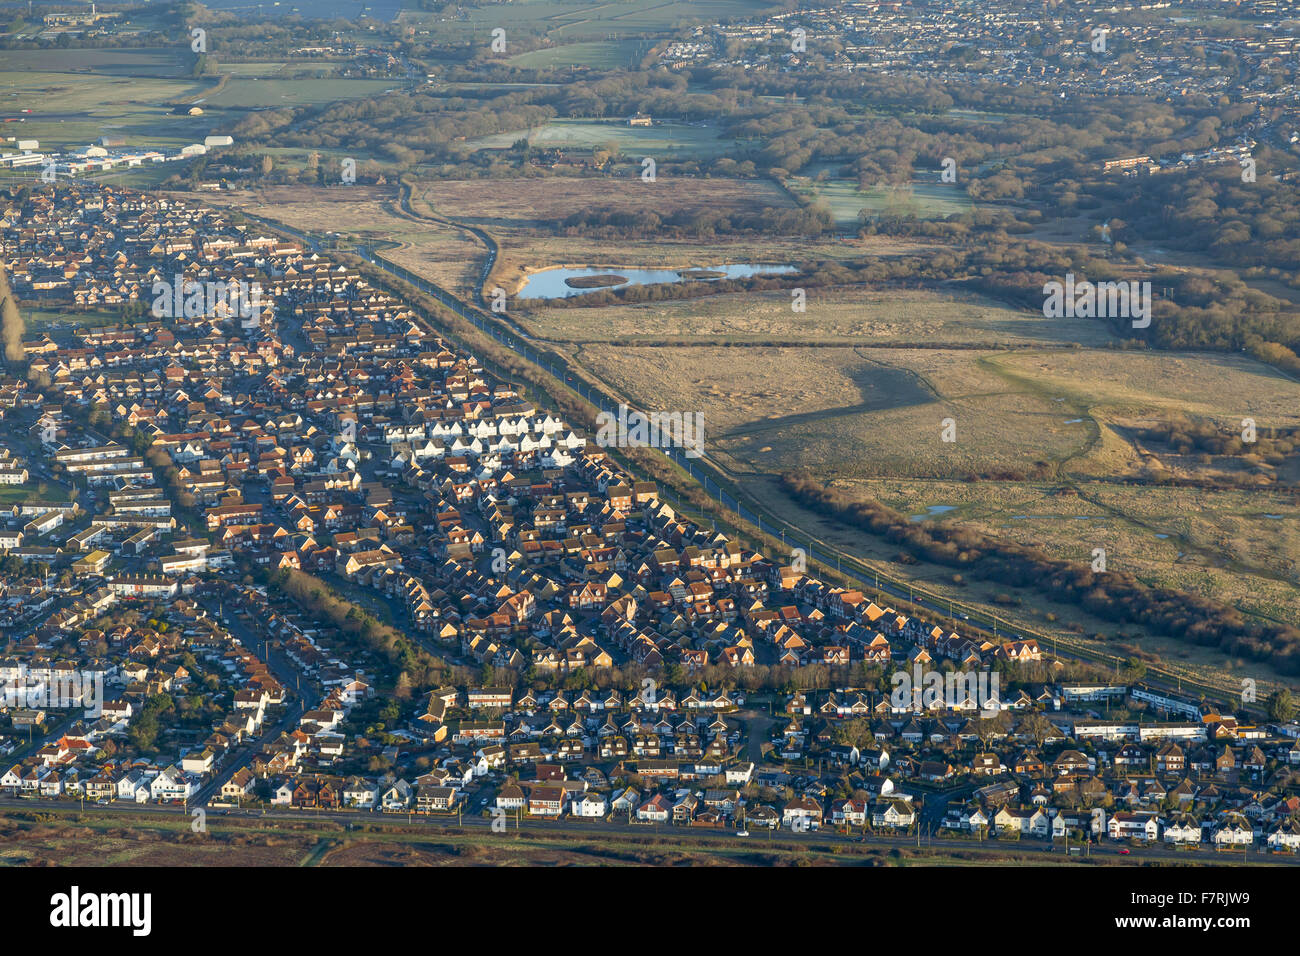 An aerial view of a developed area in the south west of England. - Stock Image